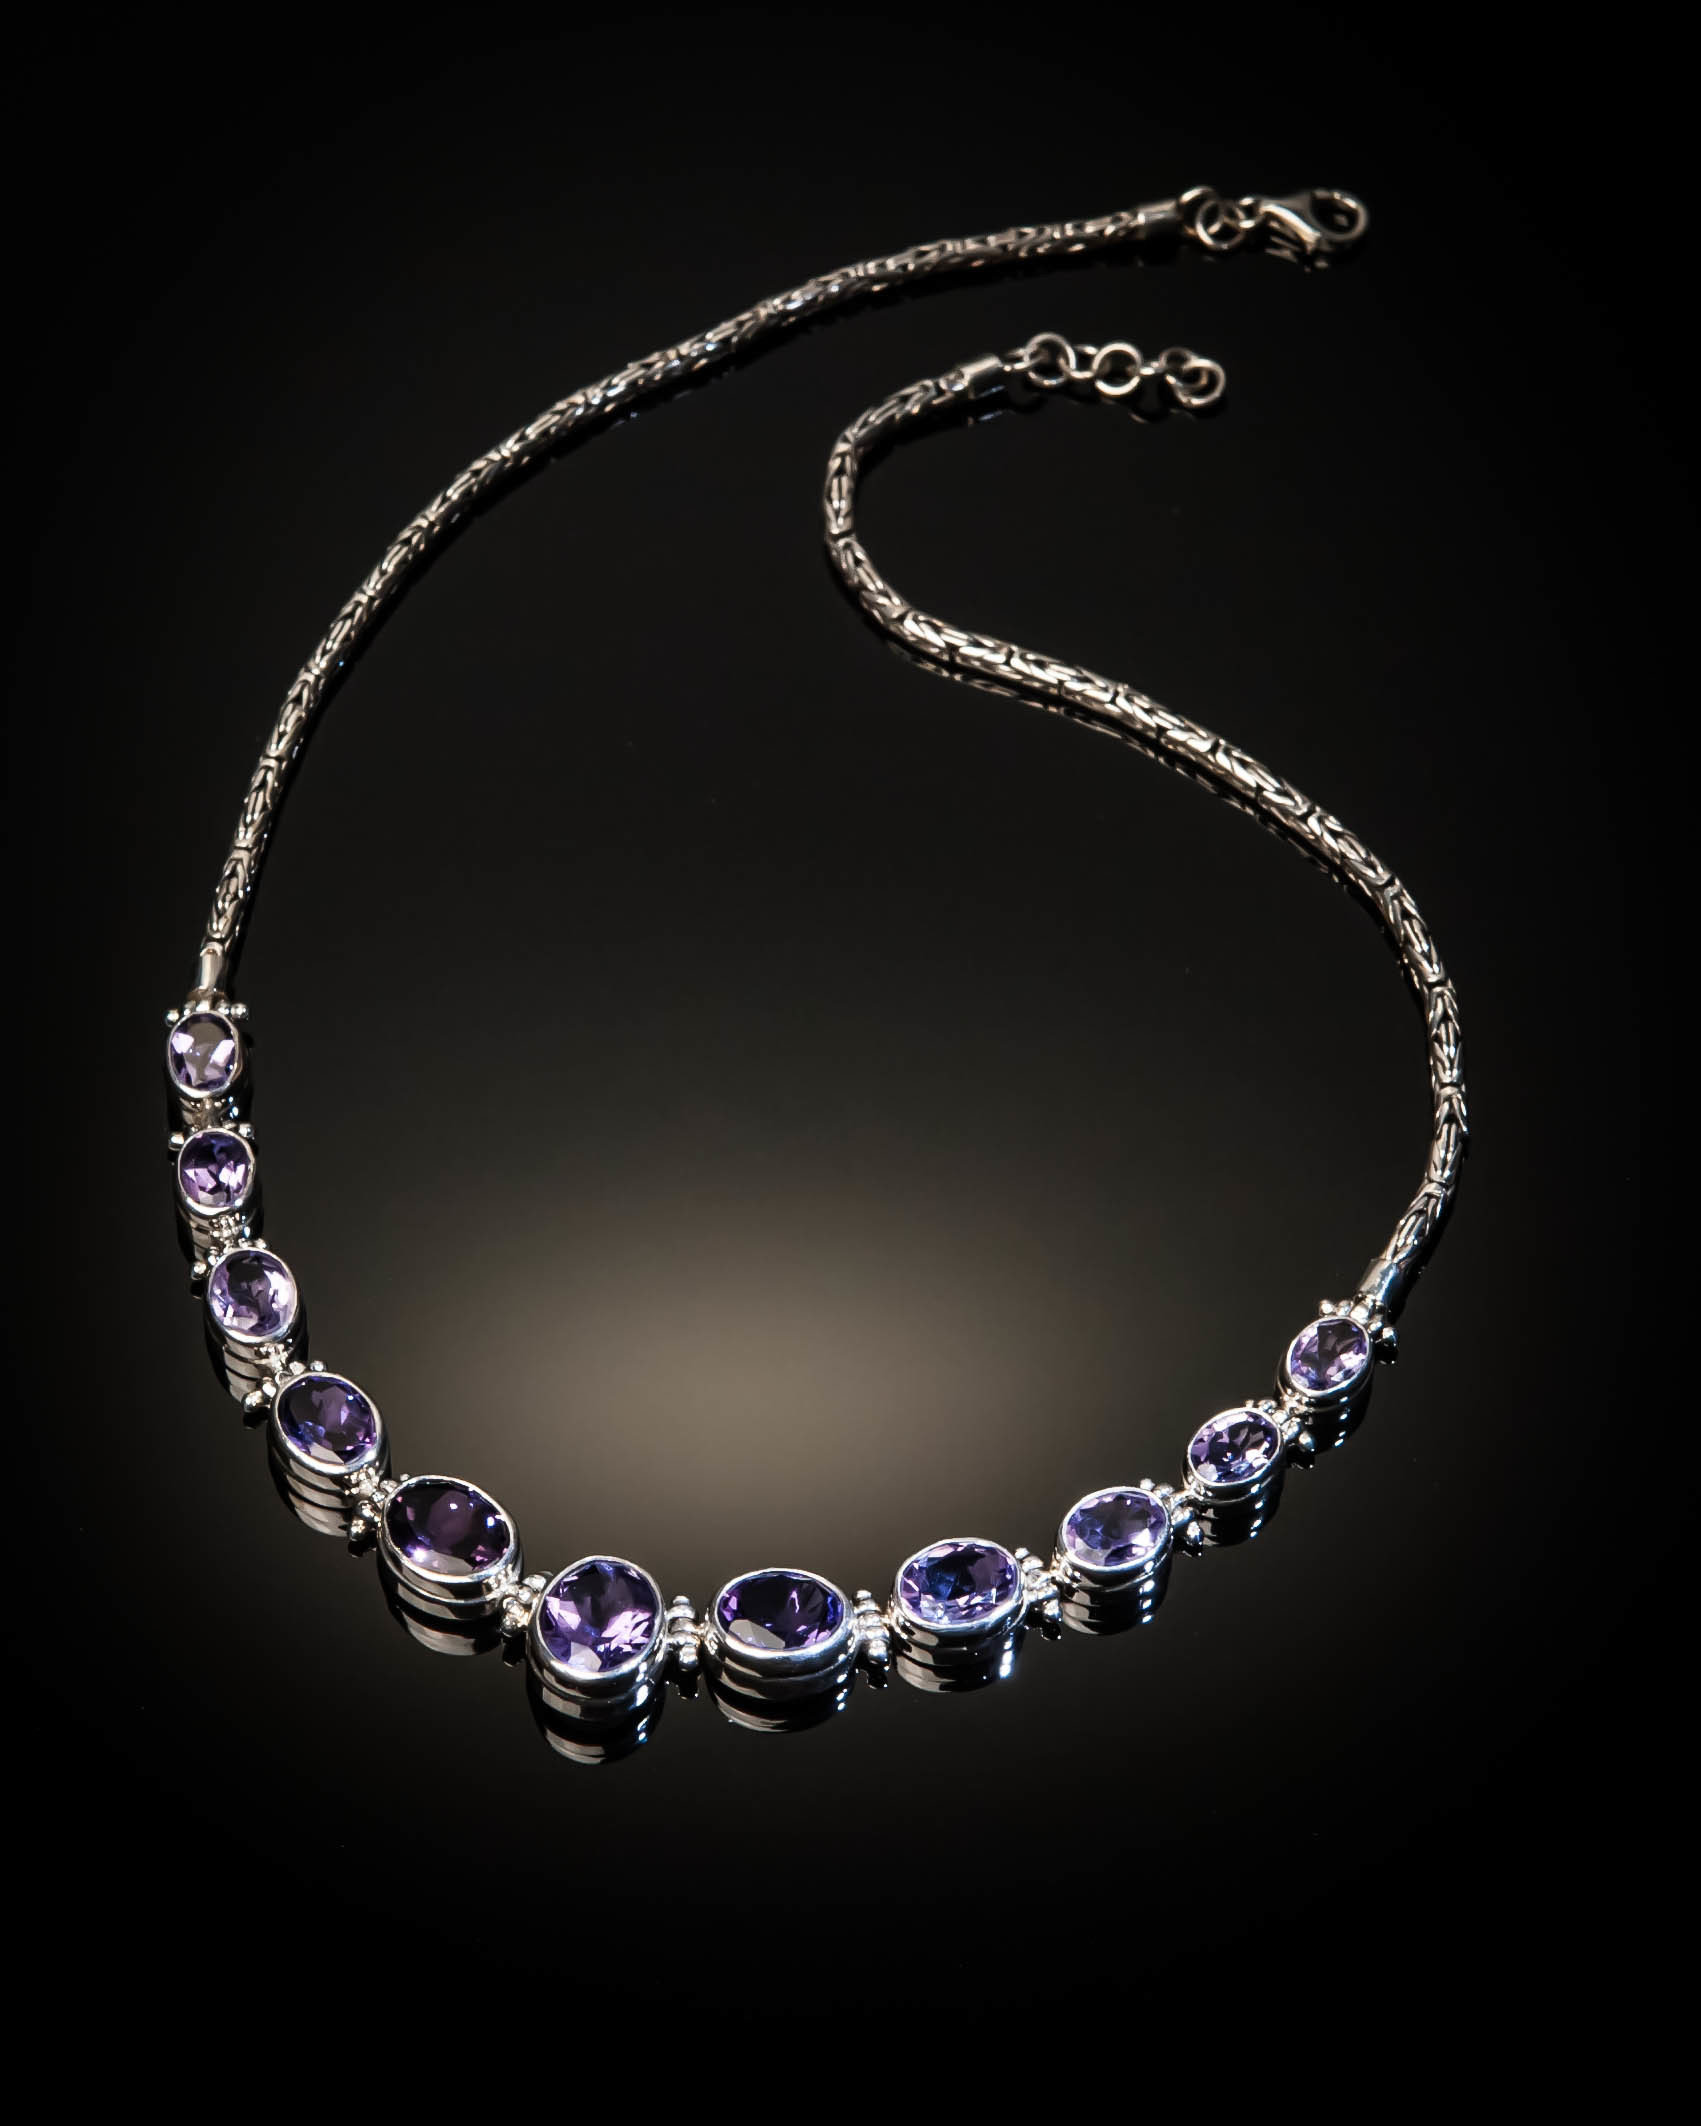 Sterling Silver Natural Amethyst Necklace AKL-XXX-Amethyst